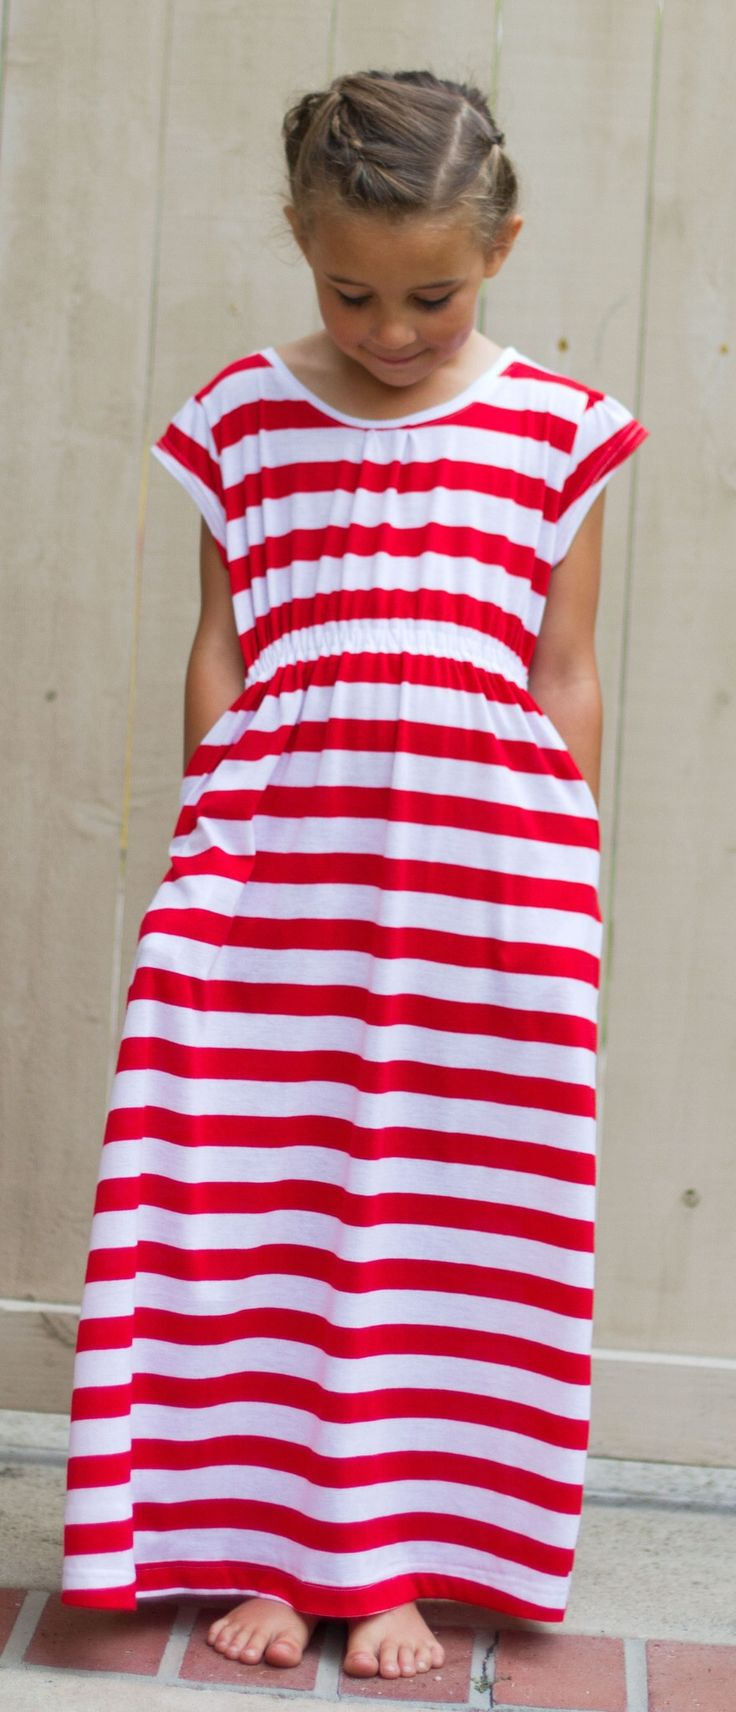 Go To Signature Dress from Go To Patterns | Top 10 Summer Dress Patterns